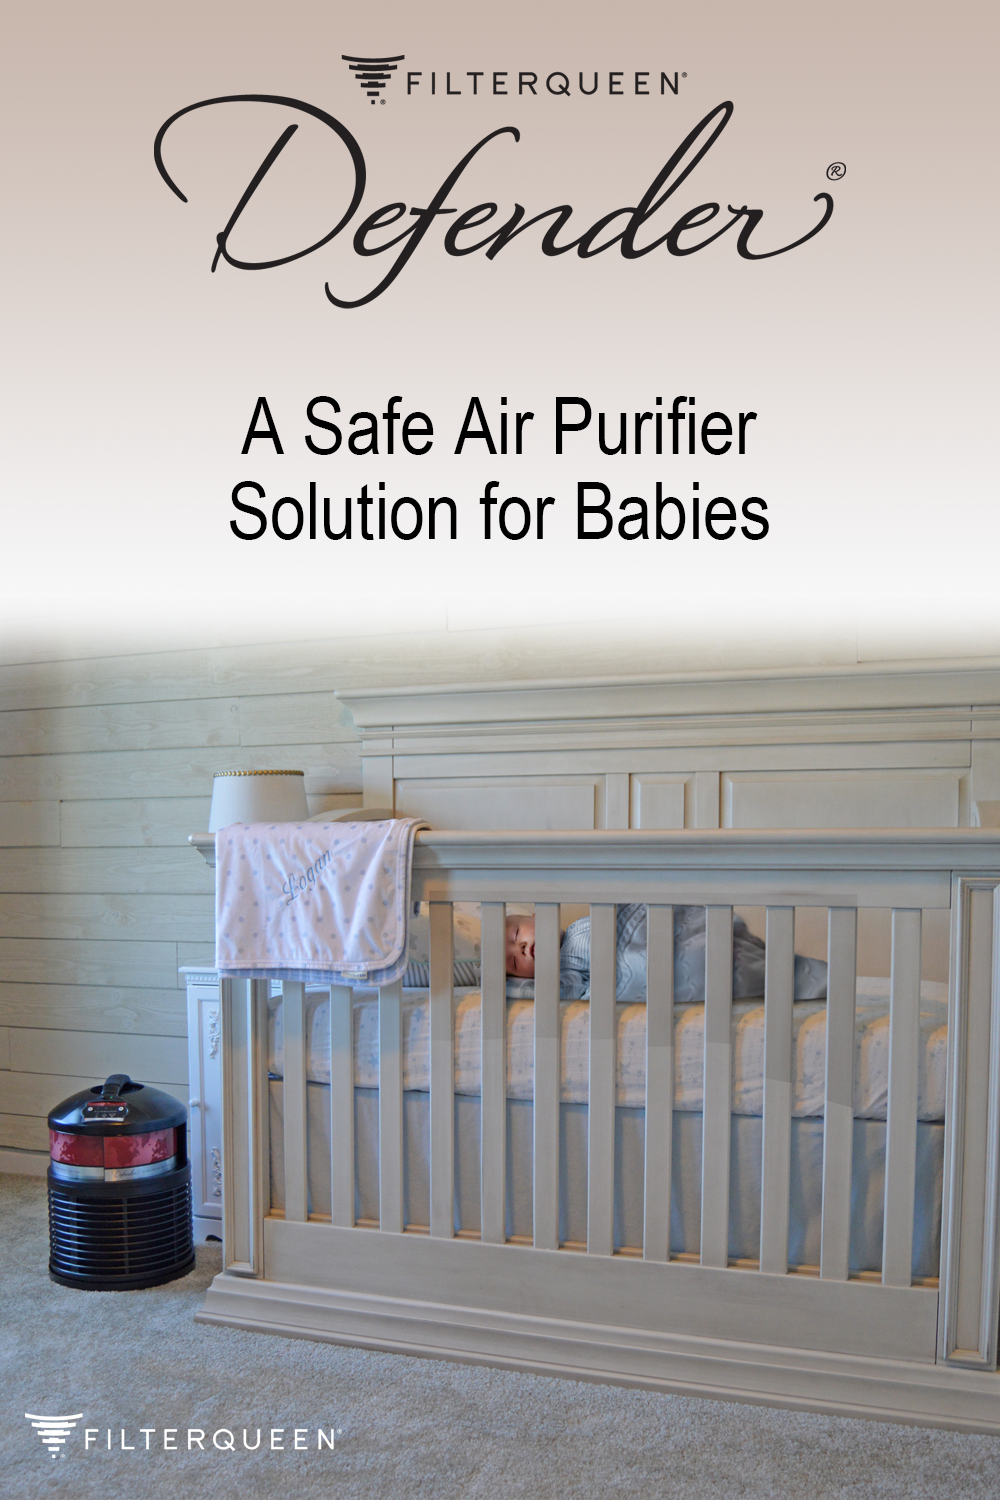 New Baby? Our solution to purified air for your new family